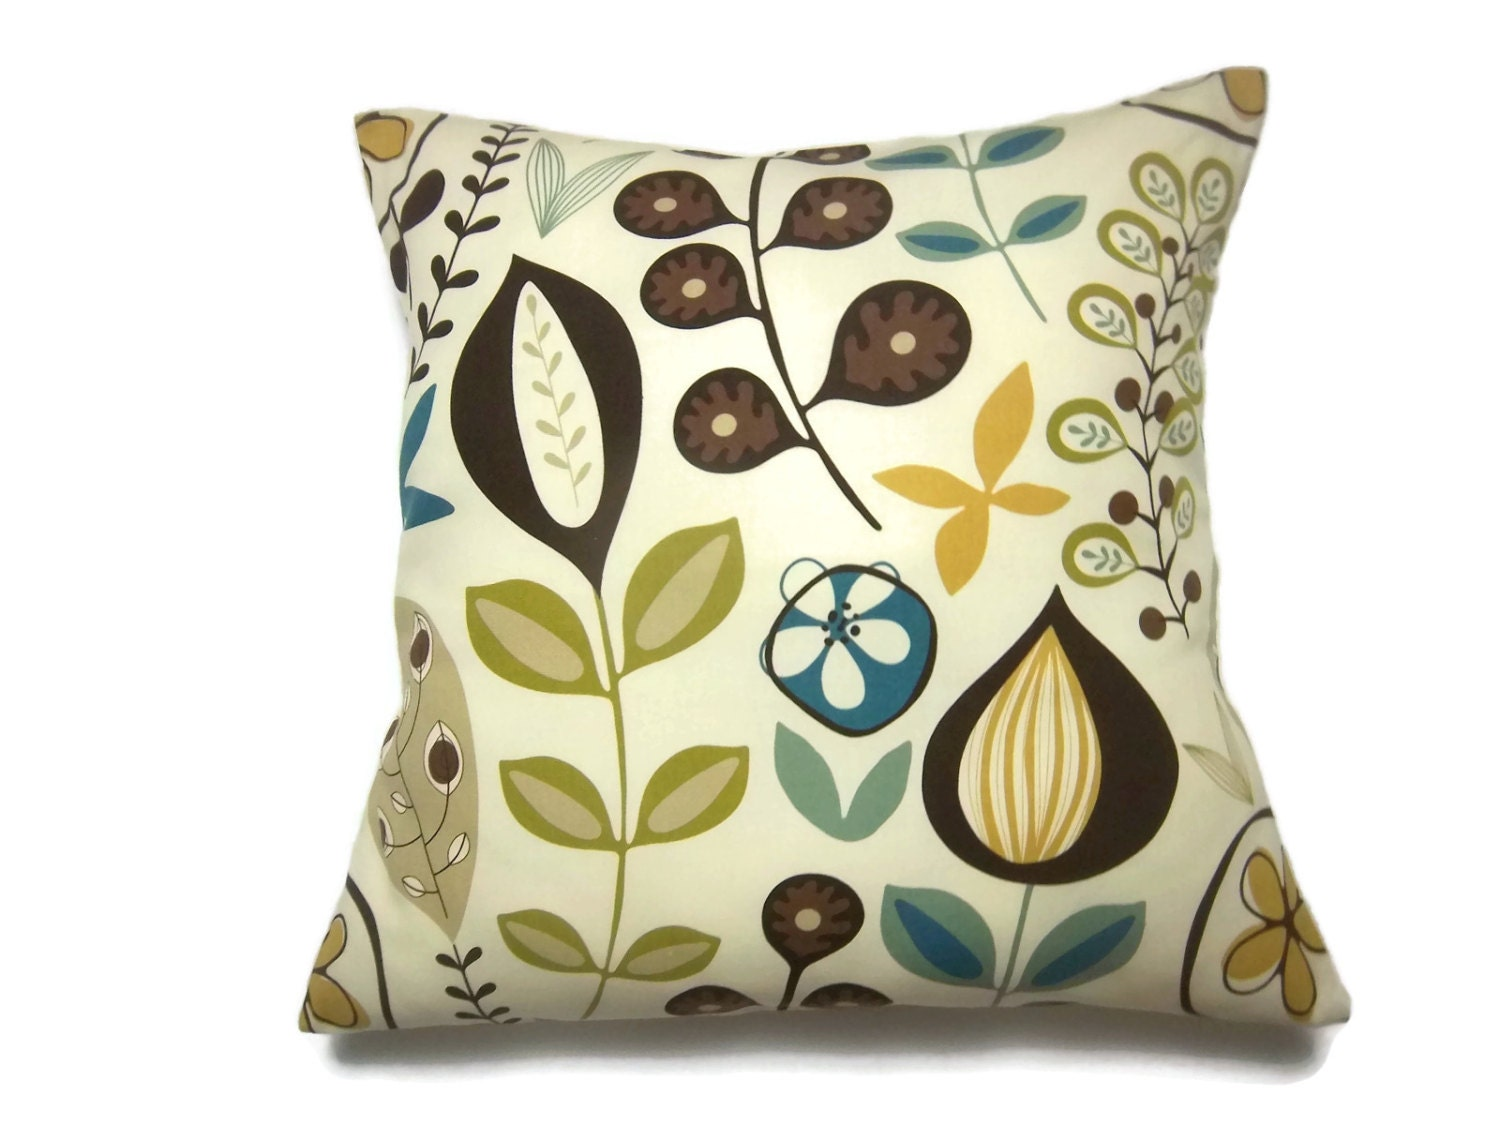 Decorative Throw Pillows Etsy : Decorative Pillow Cover Modern Floral Yellow Gold Brown Cream